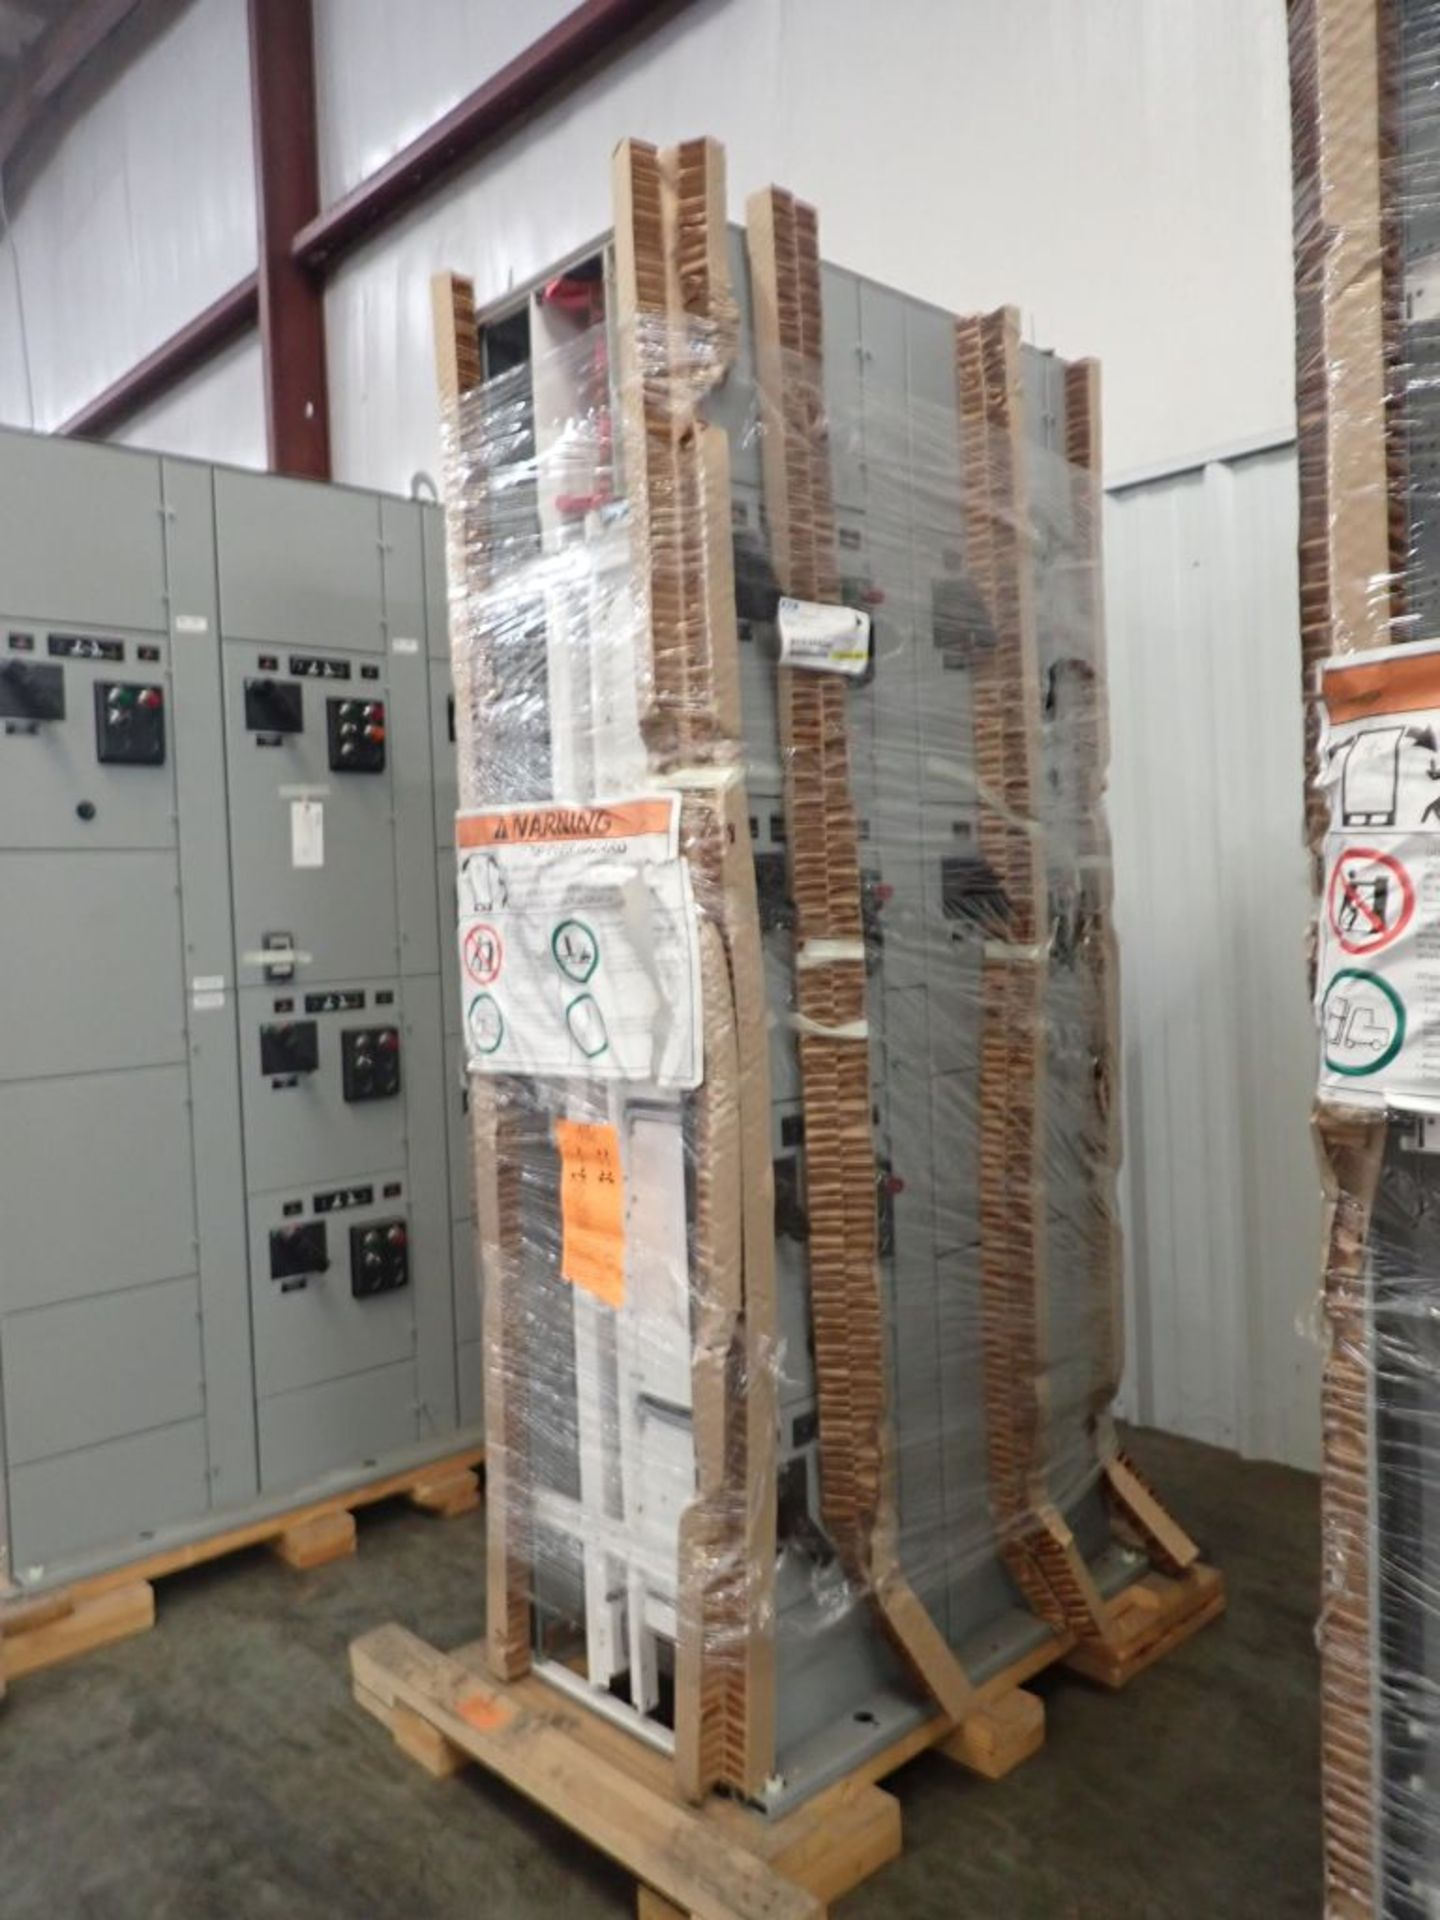 Eaton Freedom 2100 Series Motor Control Center | (2) F206-7A-10HP; (3) F206-15A-10HP; (1) FDRB-100A; - Image 6 of 87